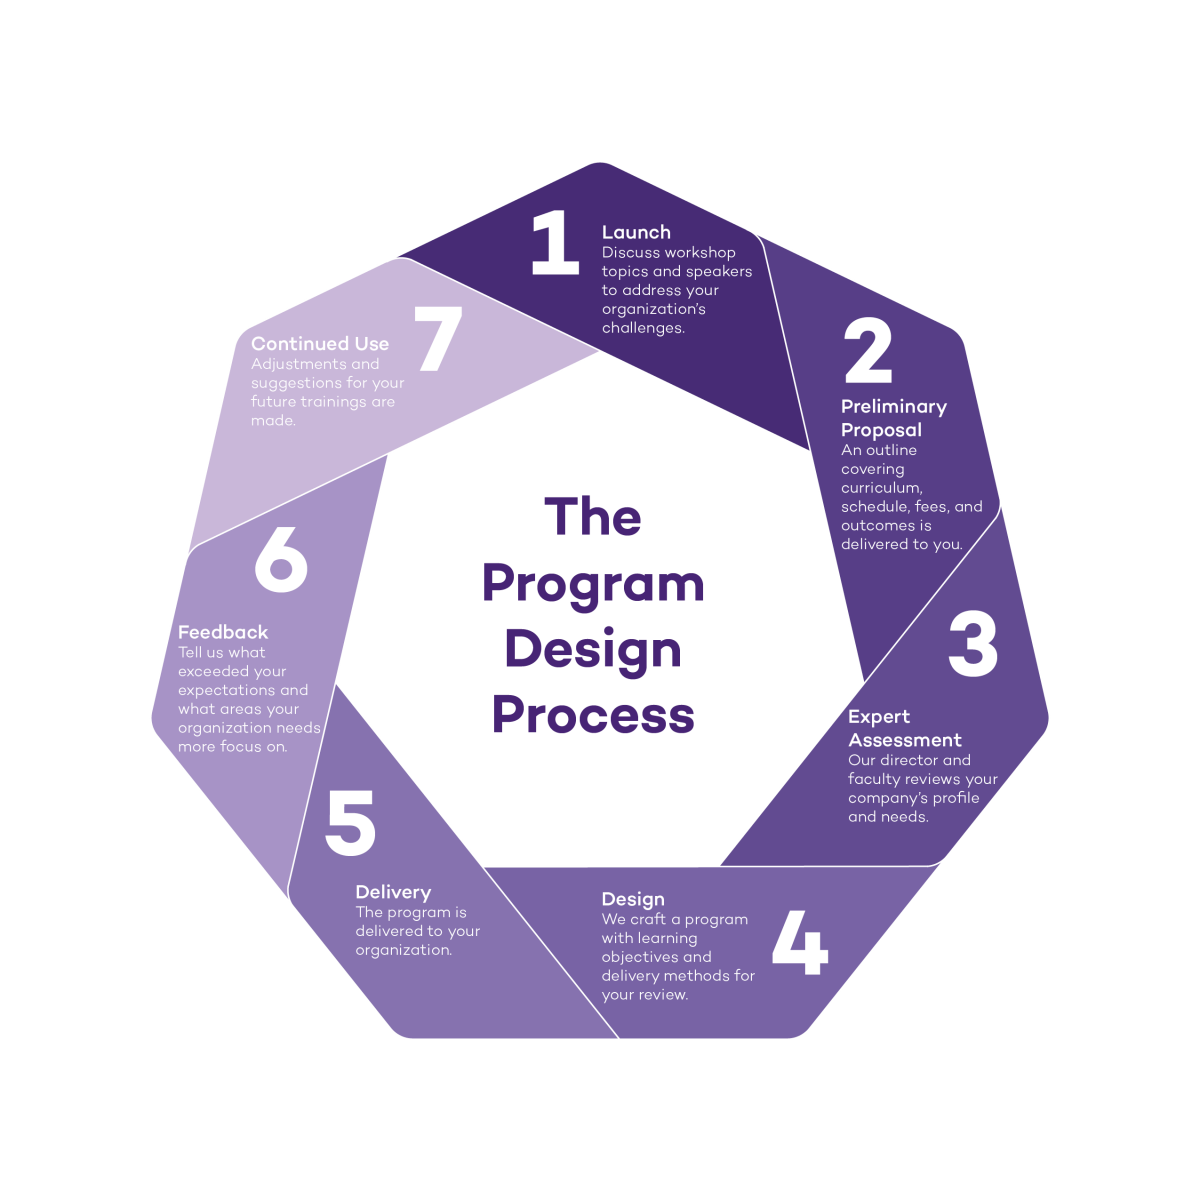 A diagram showing the process of designing a custom executive education program including launch, preliminary proposal, expert assessment, design, delivery, feedback and continued ues